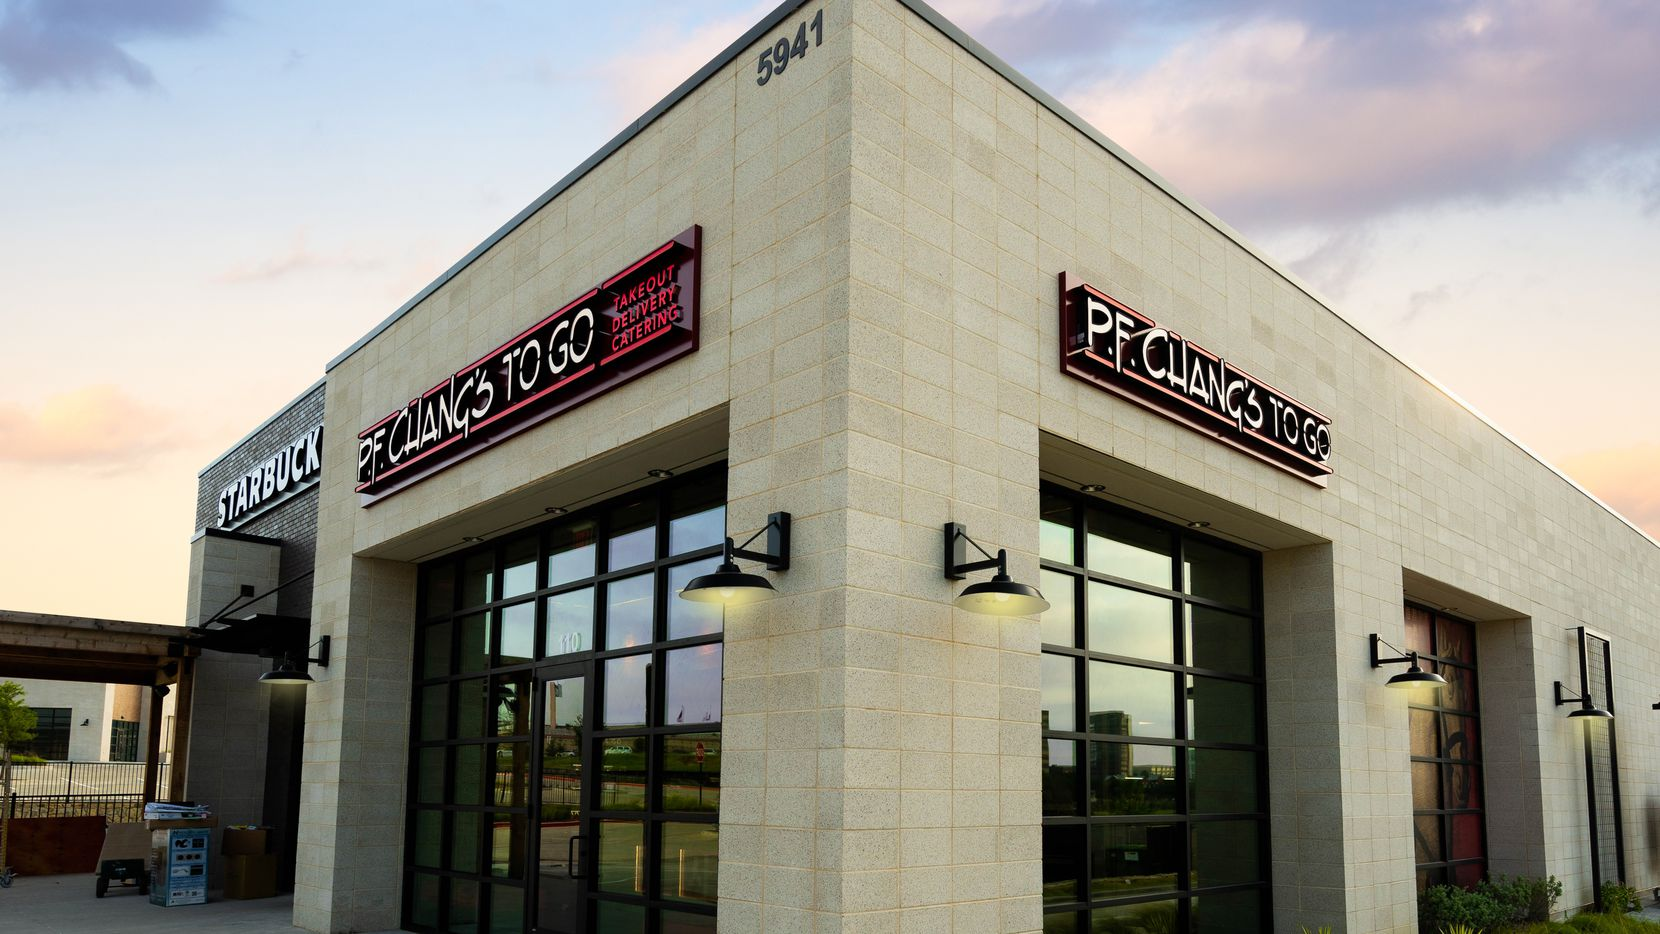 P.F. Chang's To Go opens in Irving on June 28. It's the first of its kind in Texas.